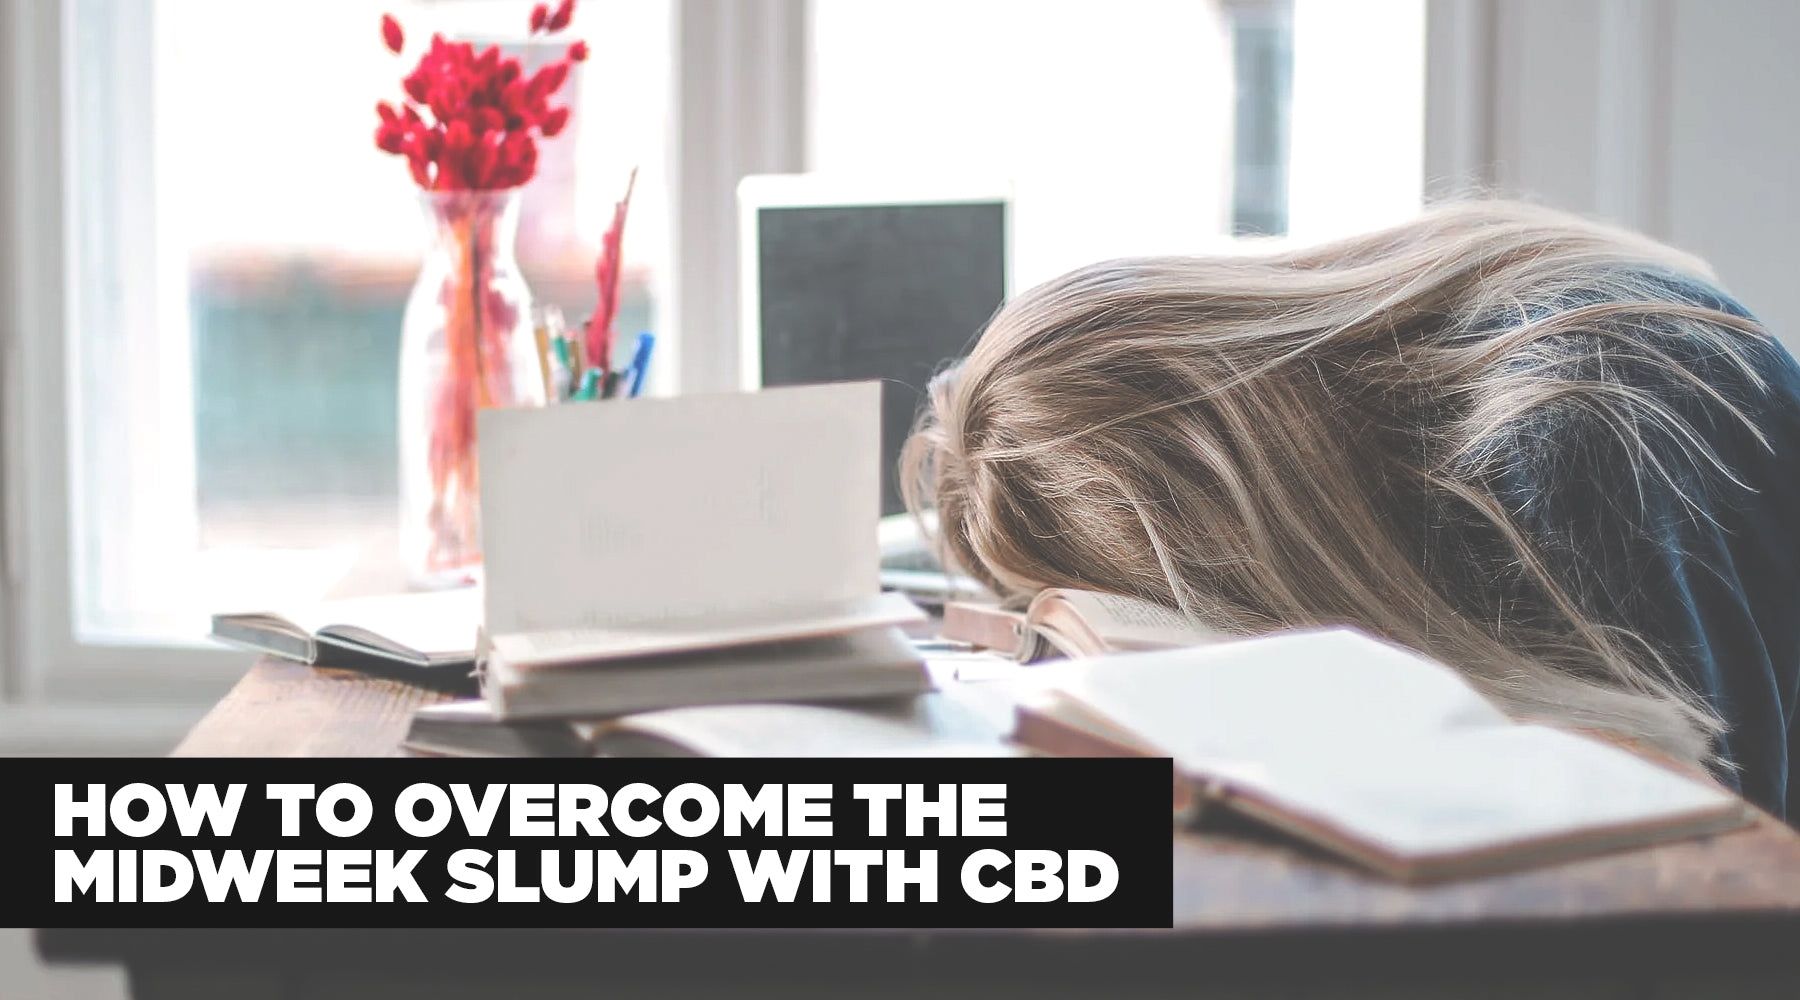 How to Overcome the Mid-Week Slump with CBD